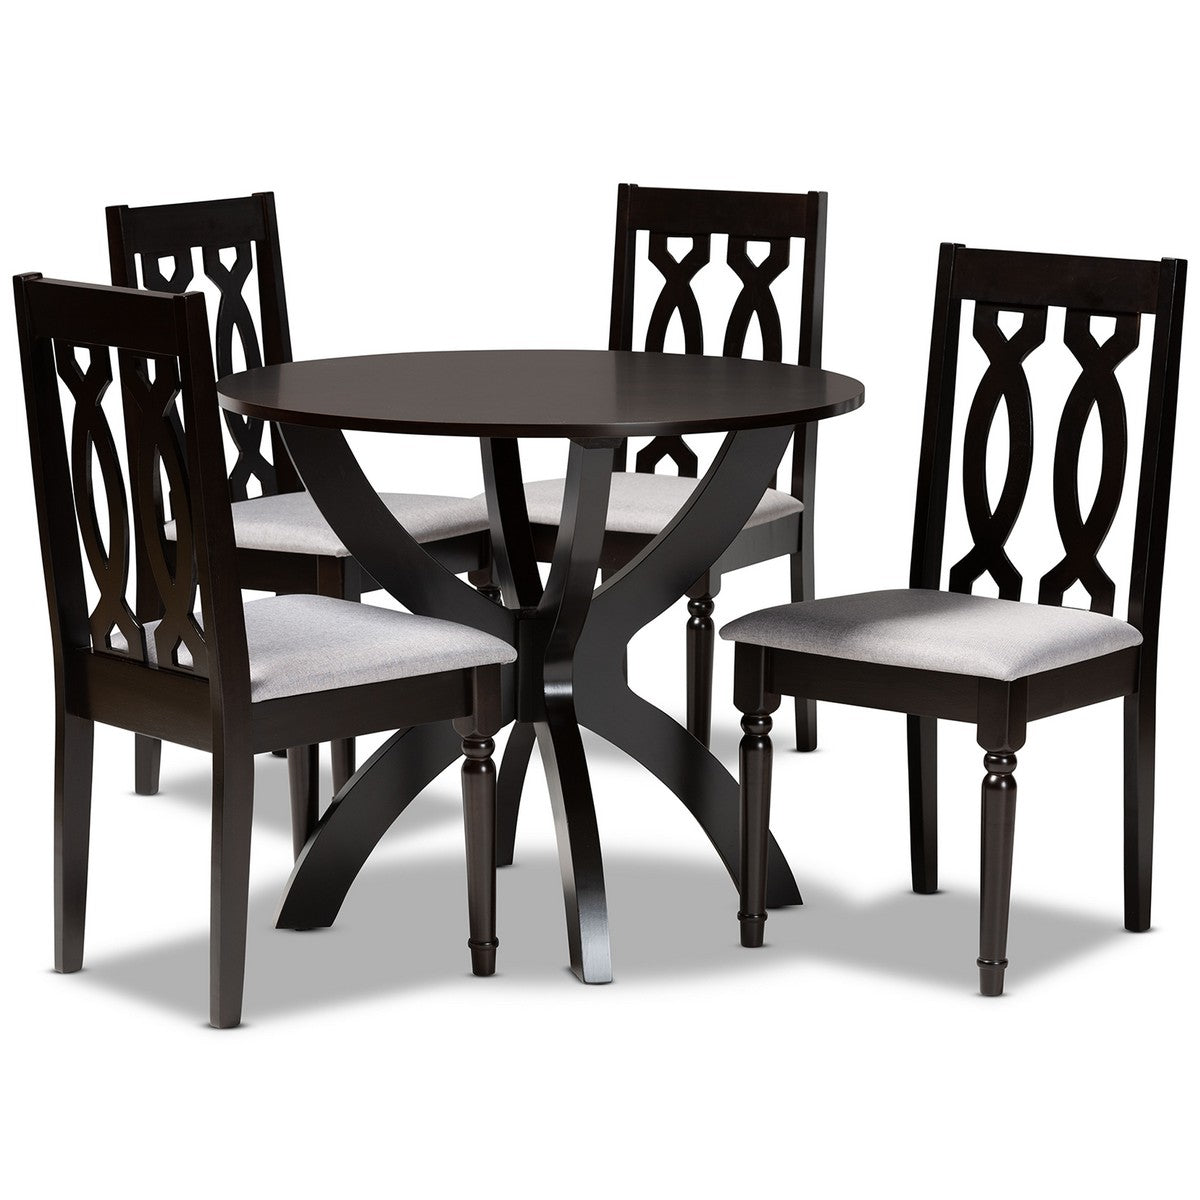 Baxton Studio Mona Modern and Contemporary Grey Fabric Upholstered and Dark Brown Finished Wood 5-Piece Dining Set Baxton Studio-Dining Sets-Minimal And Modern - 1